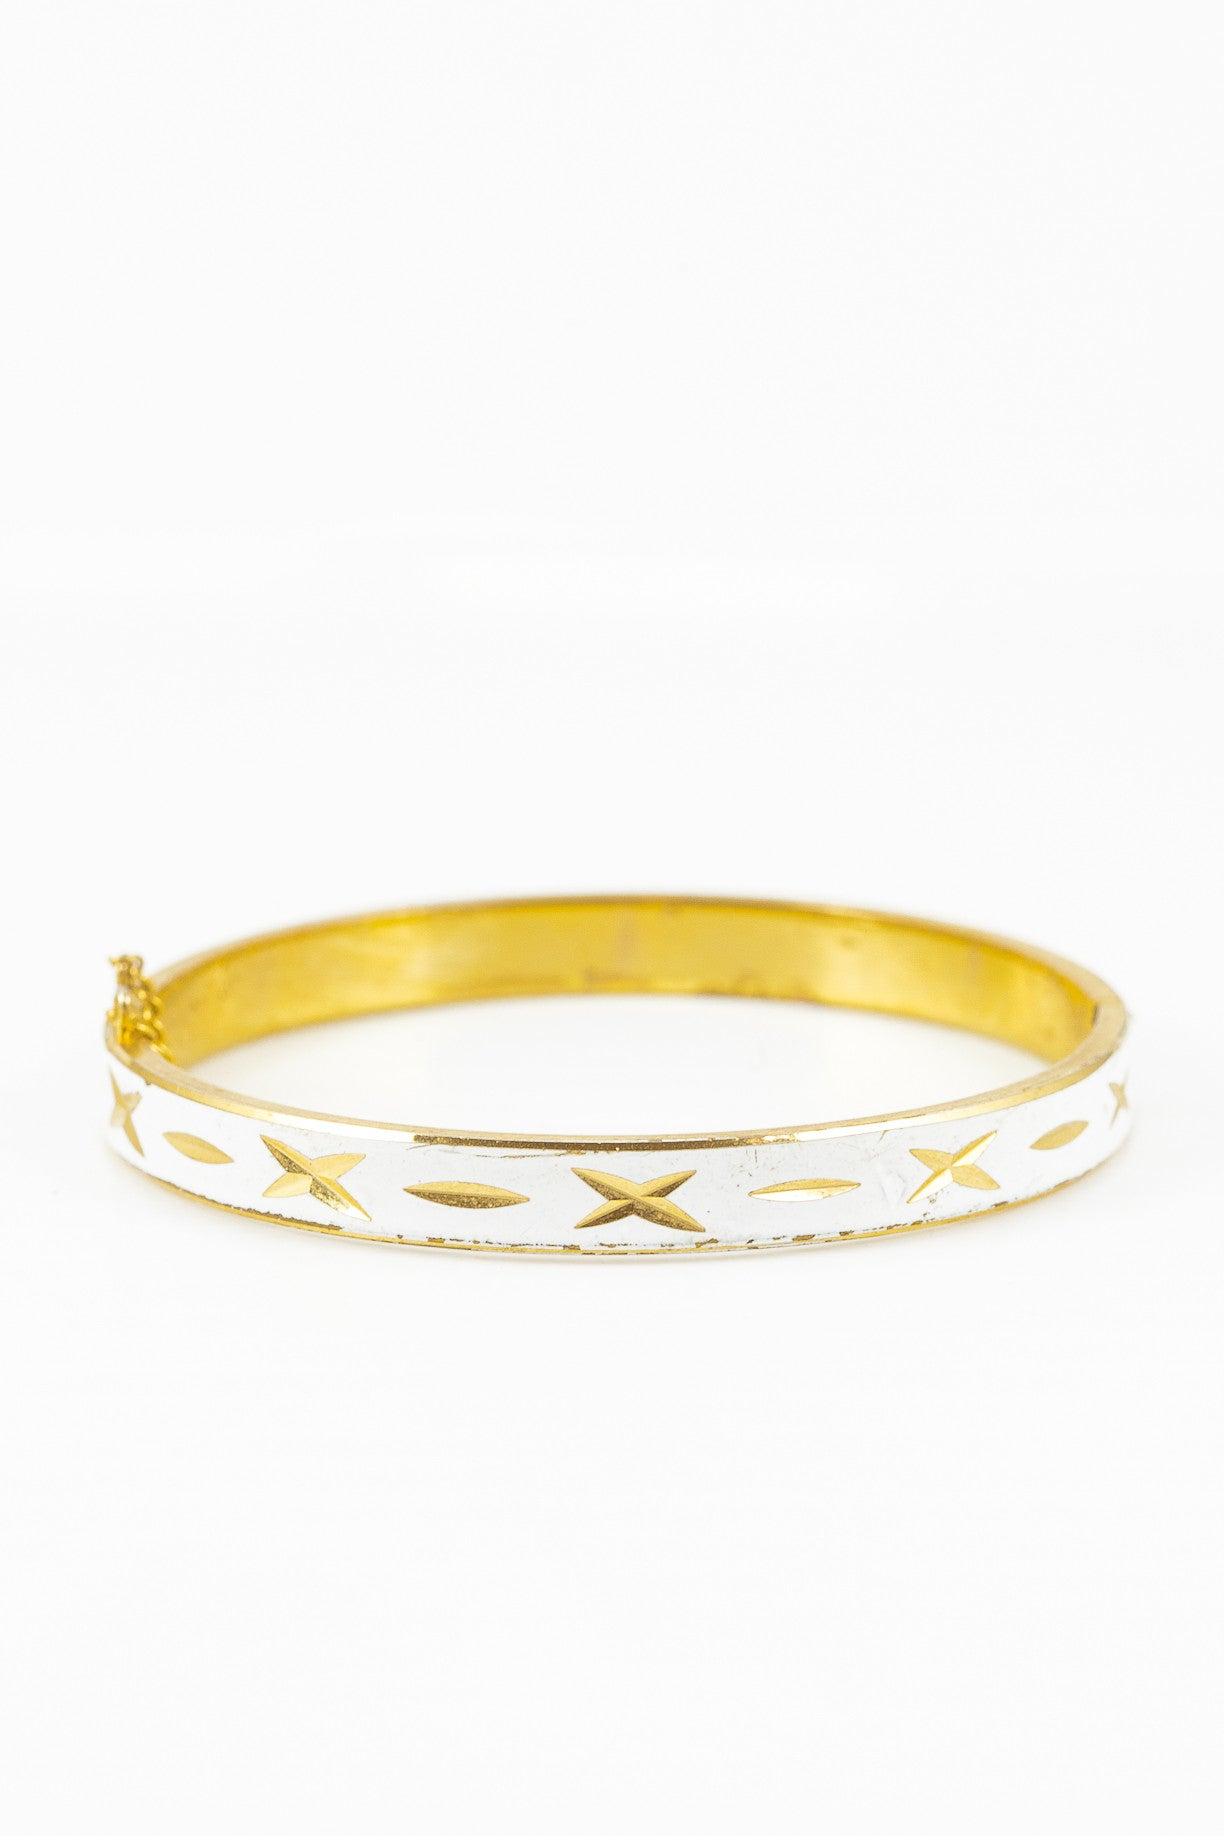 70's__Vintage__Gold X Etched White Bangle